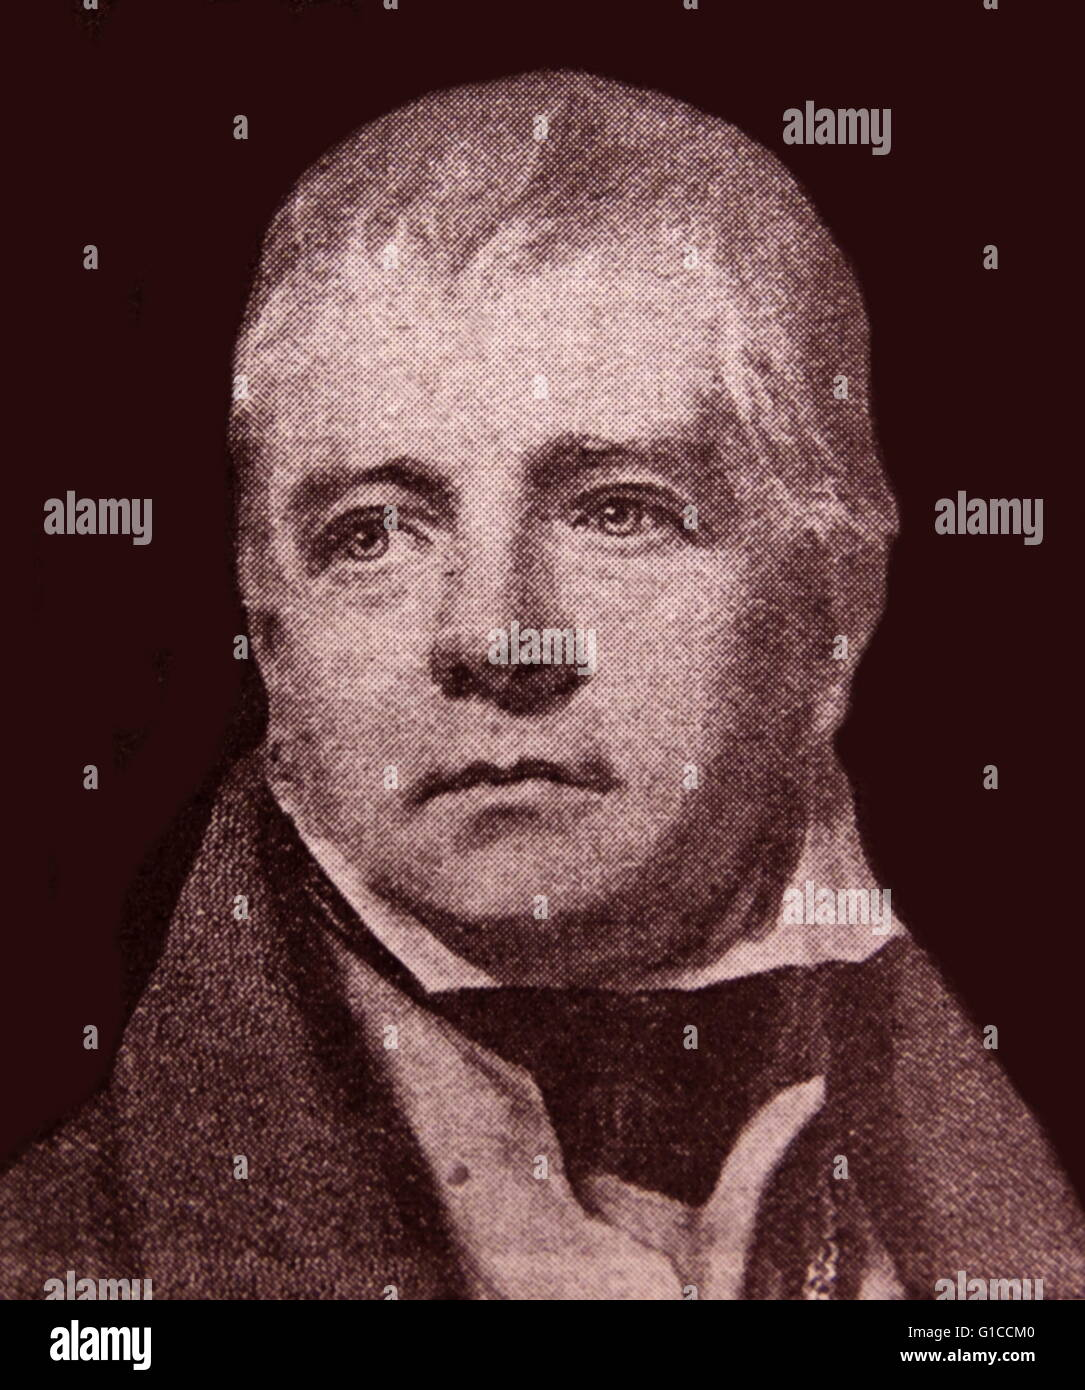 Portrait of Sir Walter Scott, 1st Baronet (1771-1832) Scottish historical novelist, playwright and poet. Dated 19th - Stock Image